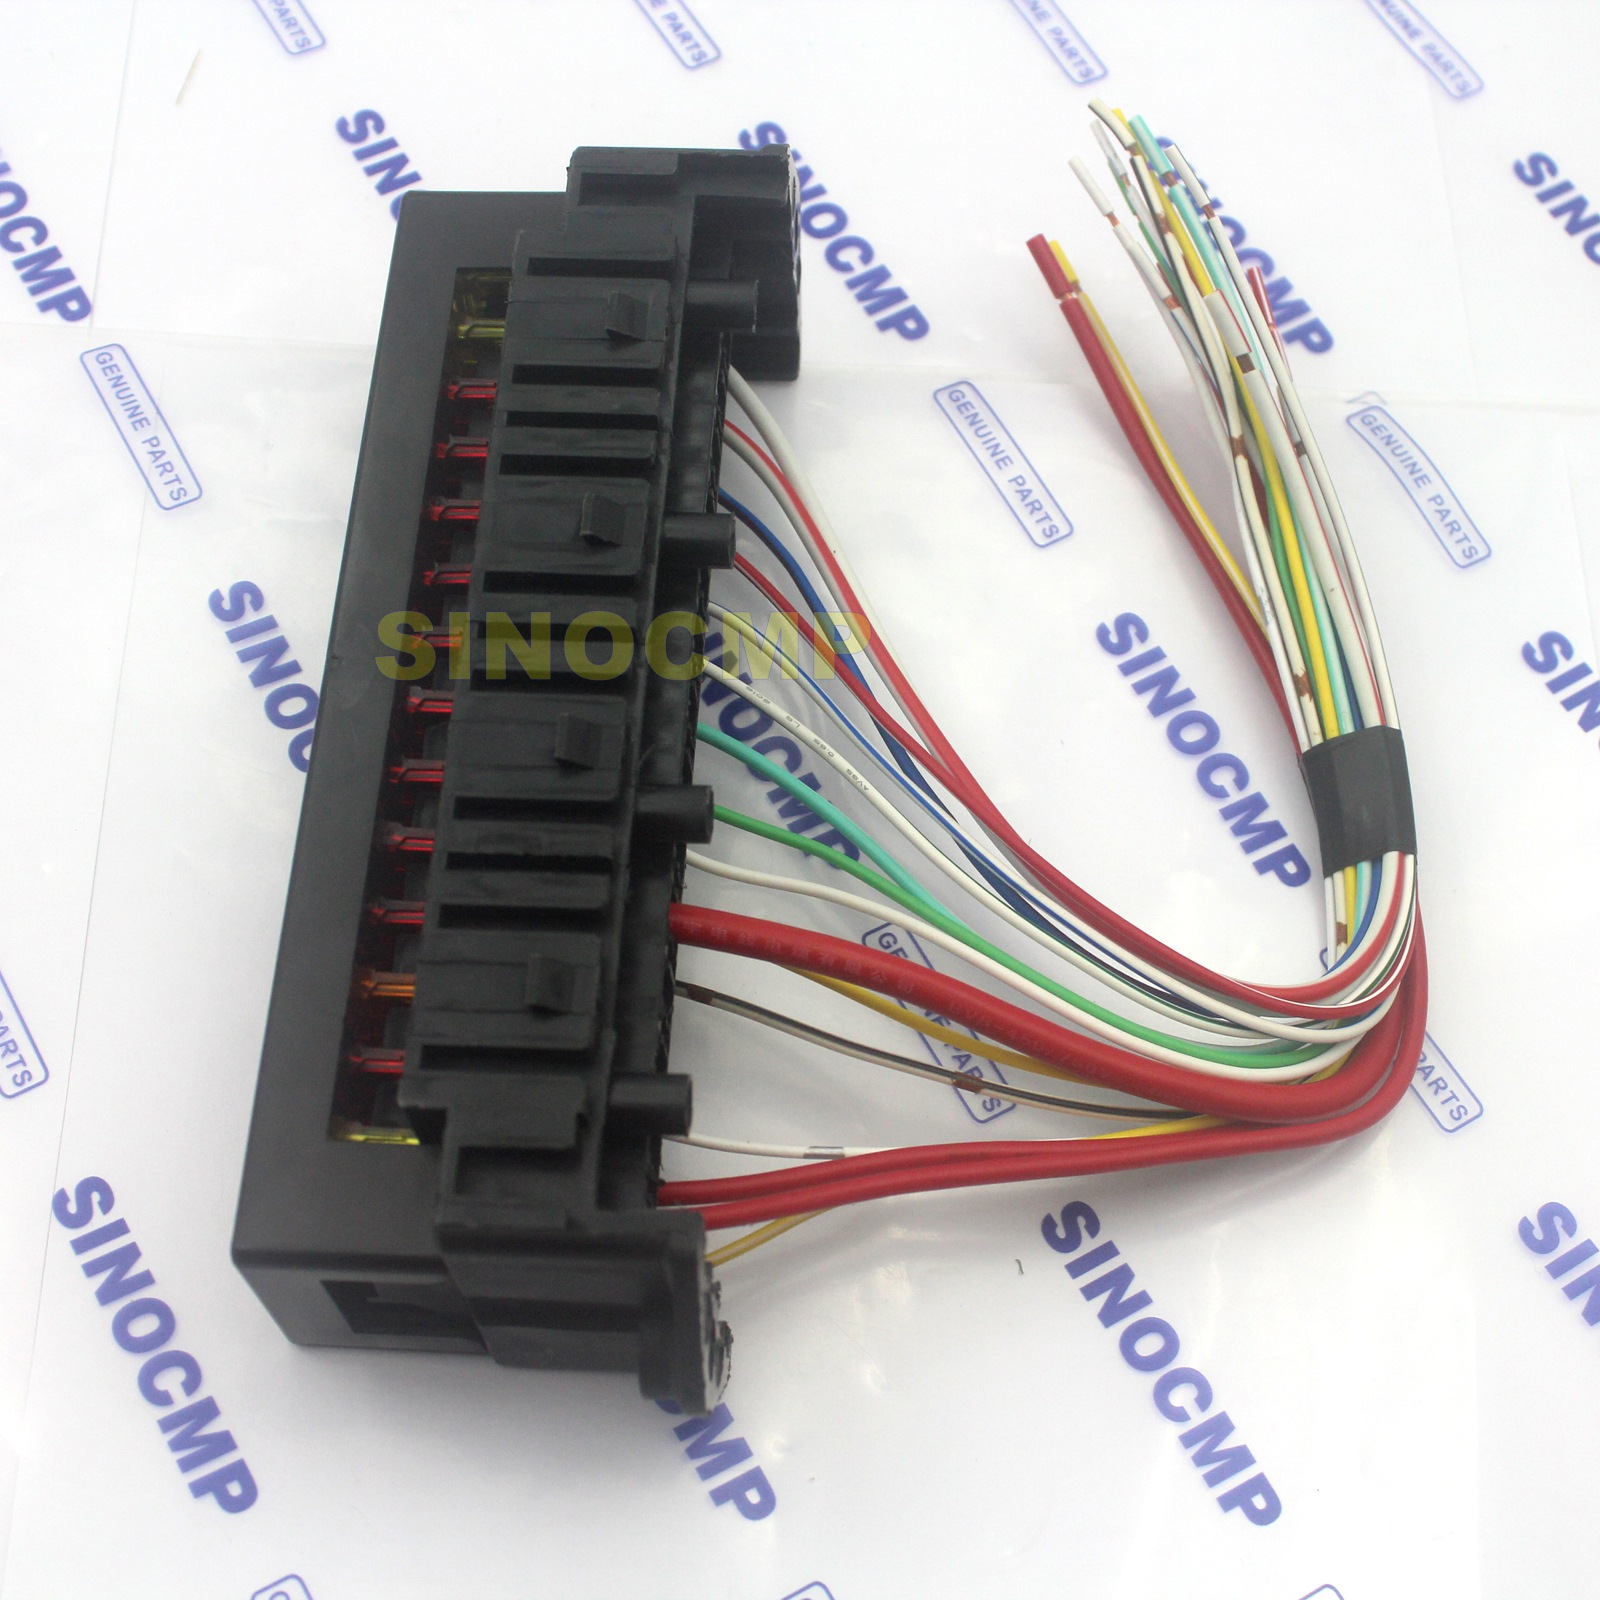 Pc200 6 Pc210 Pc300 Excavator Fuse Box Assembly For Komatsu Ebay Mazda Removal